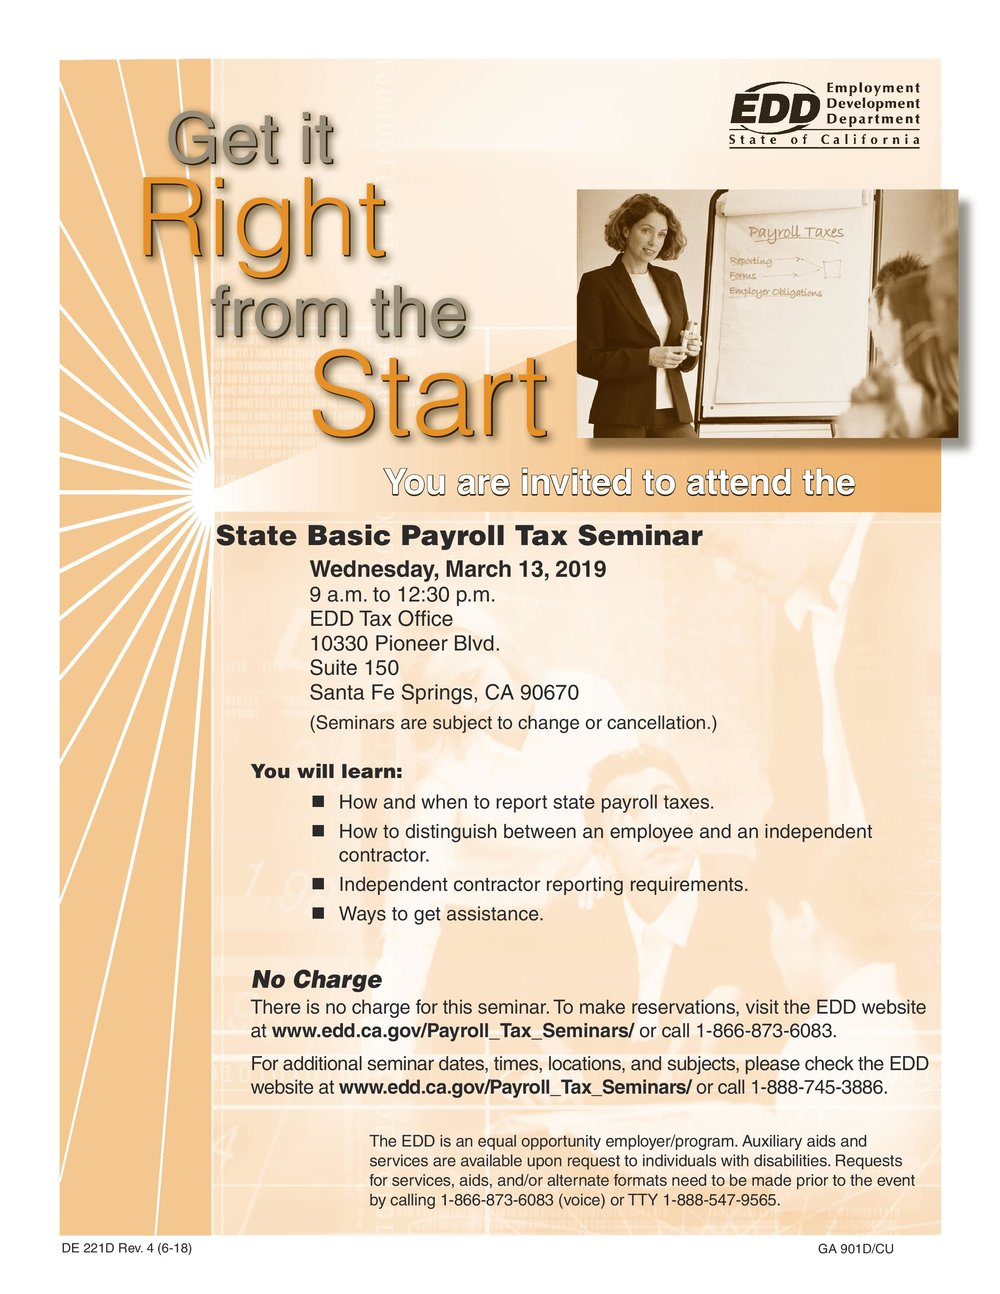 State basic payroll tax seminar  - March 13th, 2019